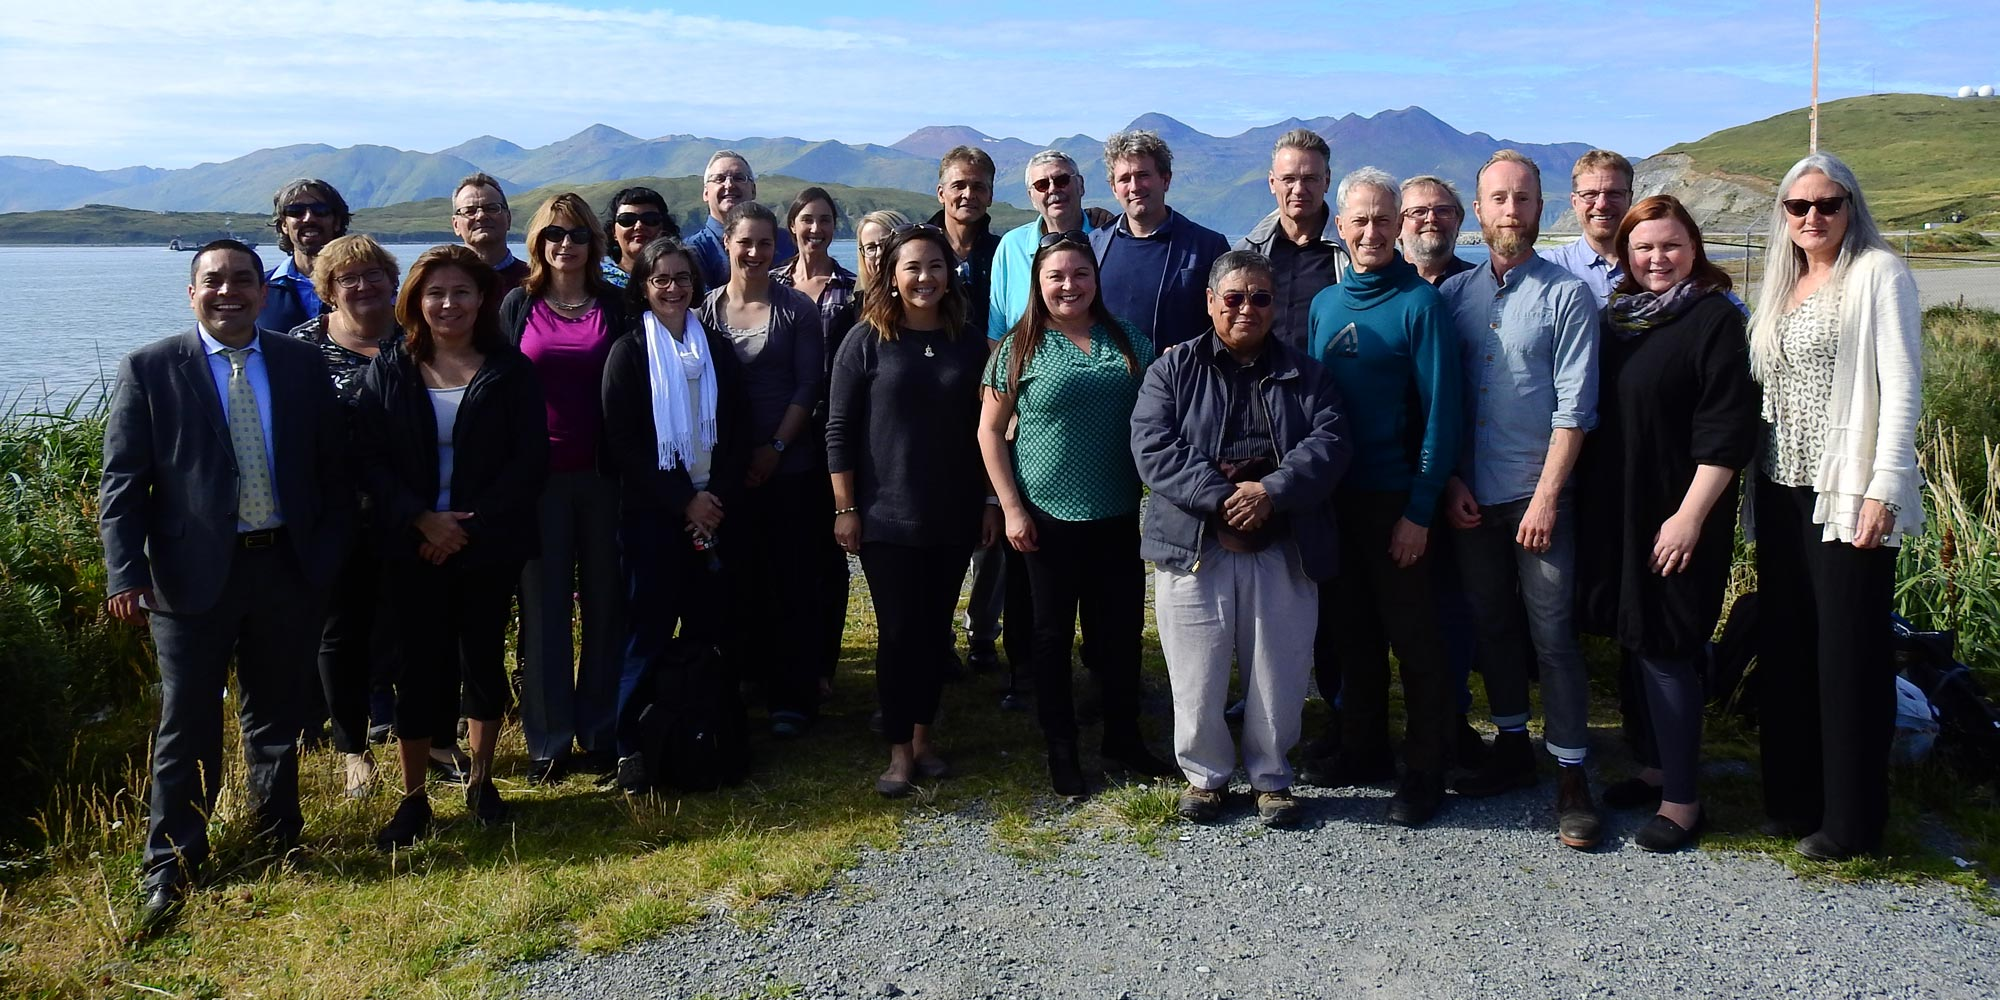 CAFF Board meeting in Unalaska, Alaska, September 2018.